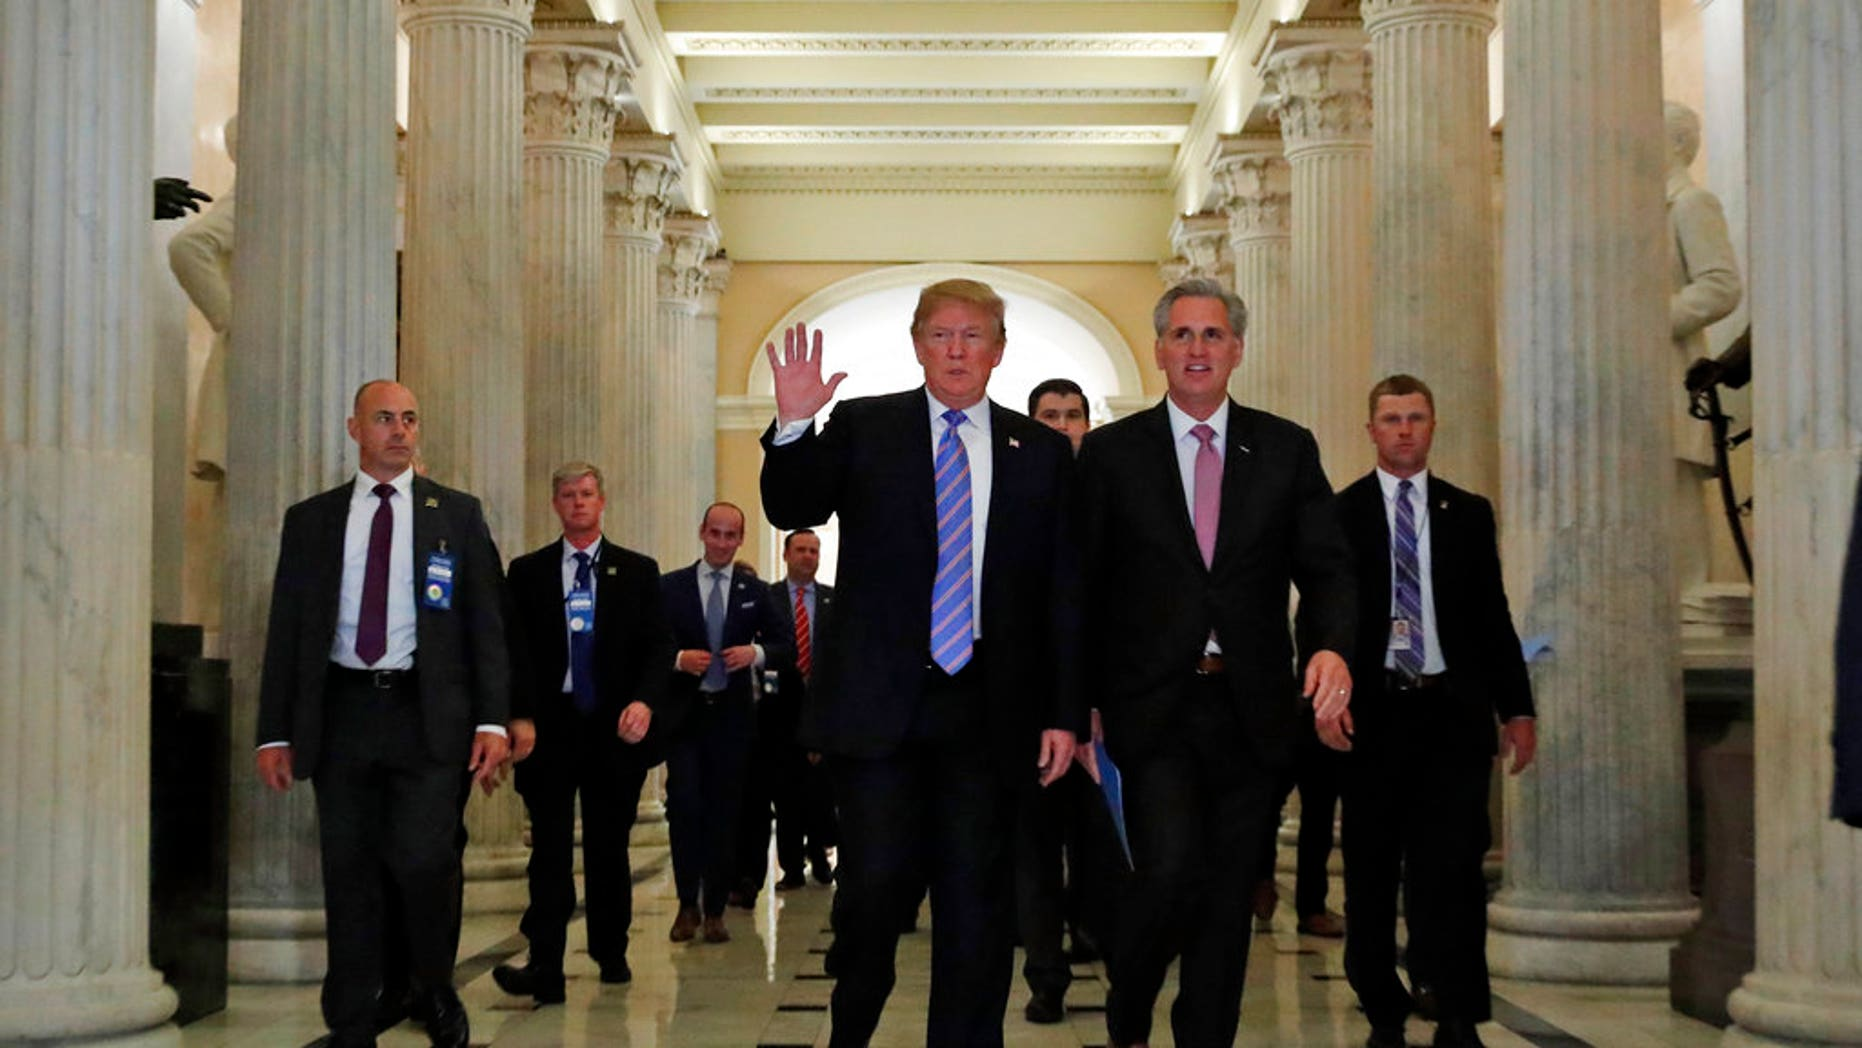 resident Trump and House Majority Leader Kevin McCarthy of California at the Capitol on Wednesday.